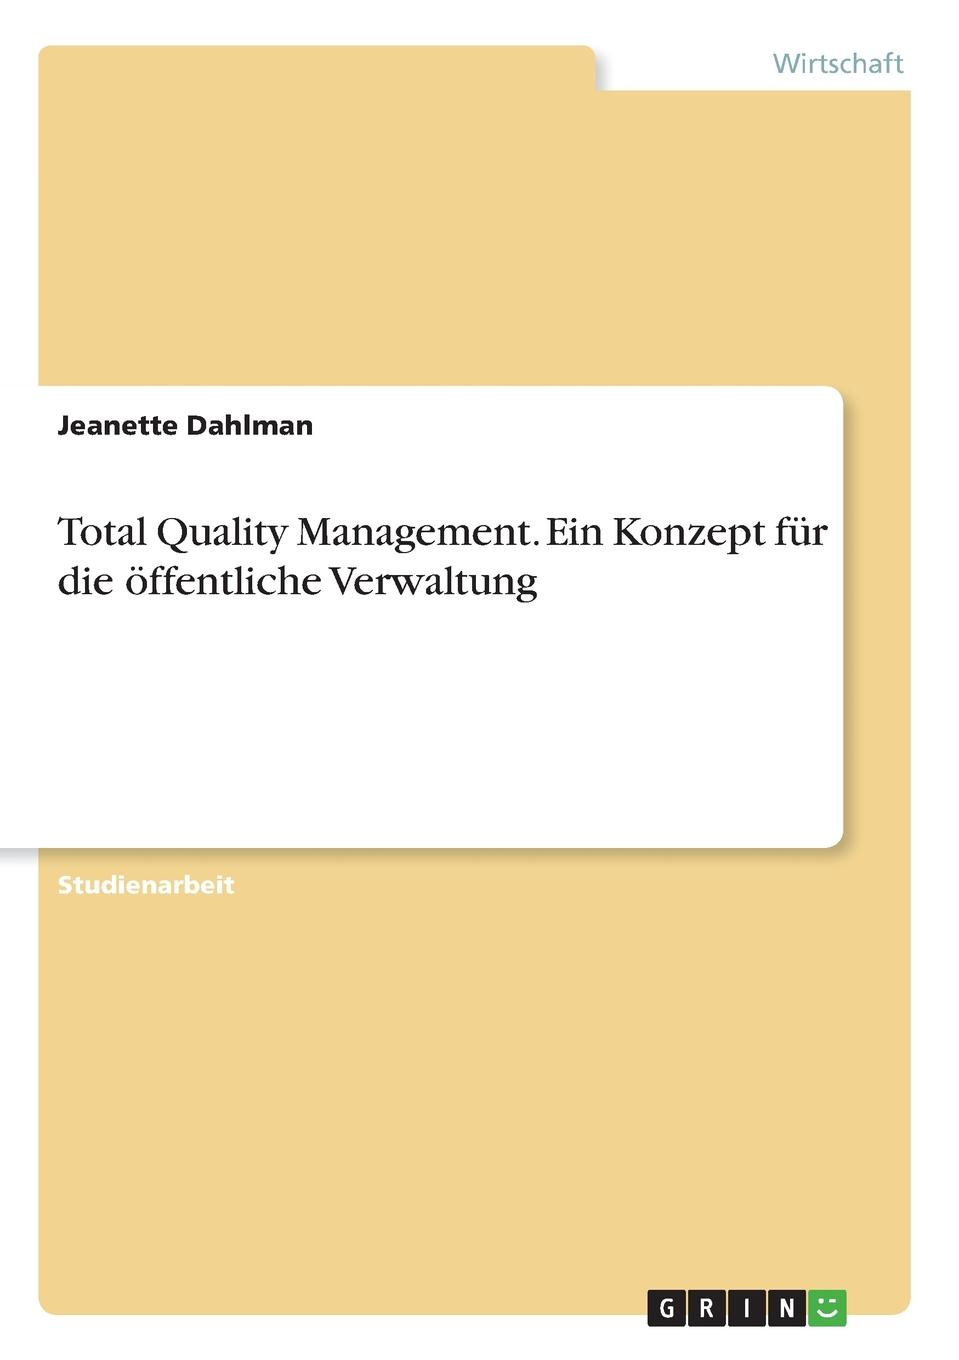 Jeanette Dahlman Total Quality Management. Ein Konzept fur die offentliche Verwaltung abadal salam t hussain measurement techniques of total quality management tqm